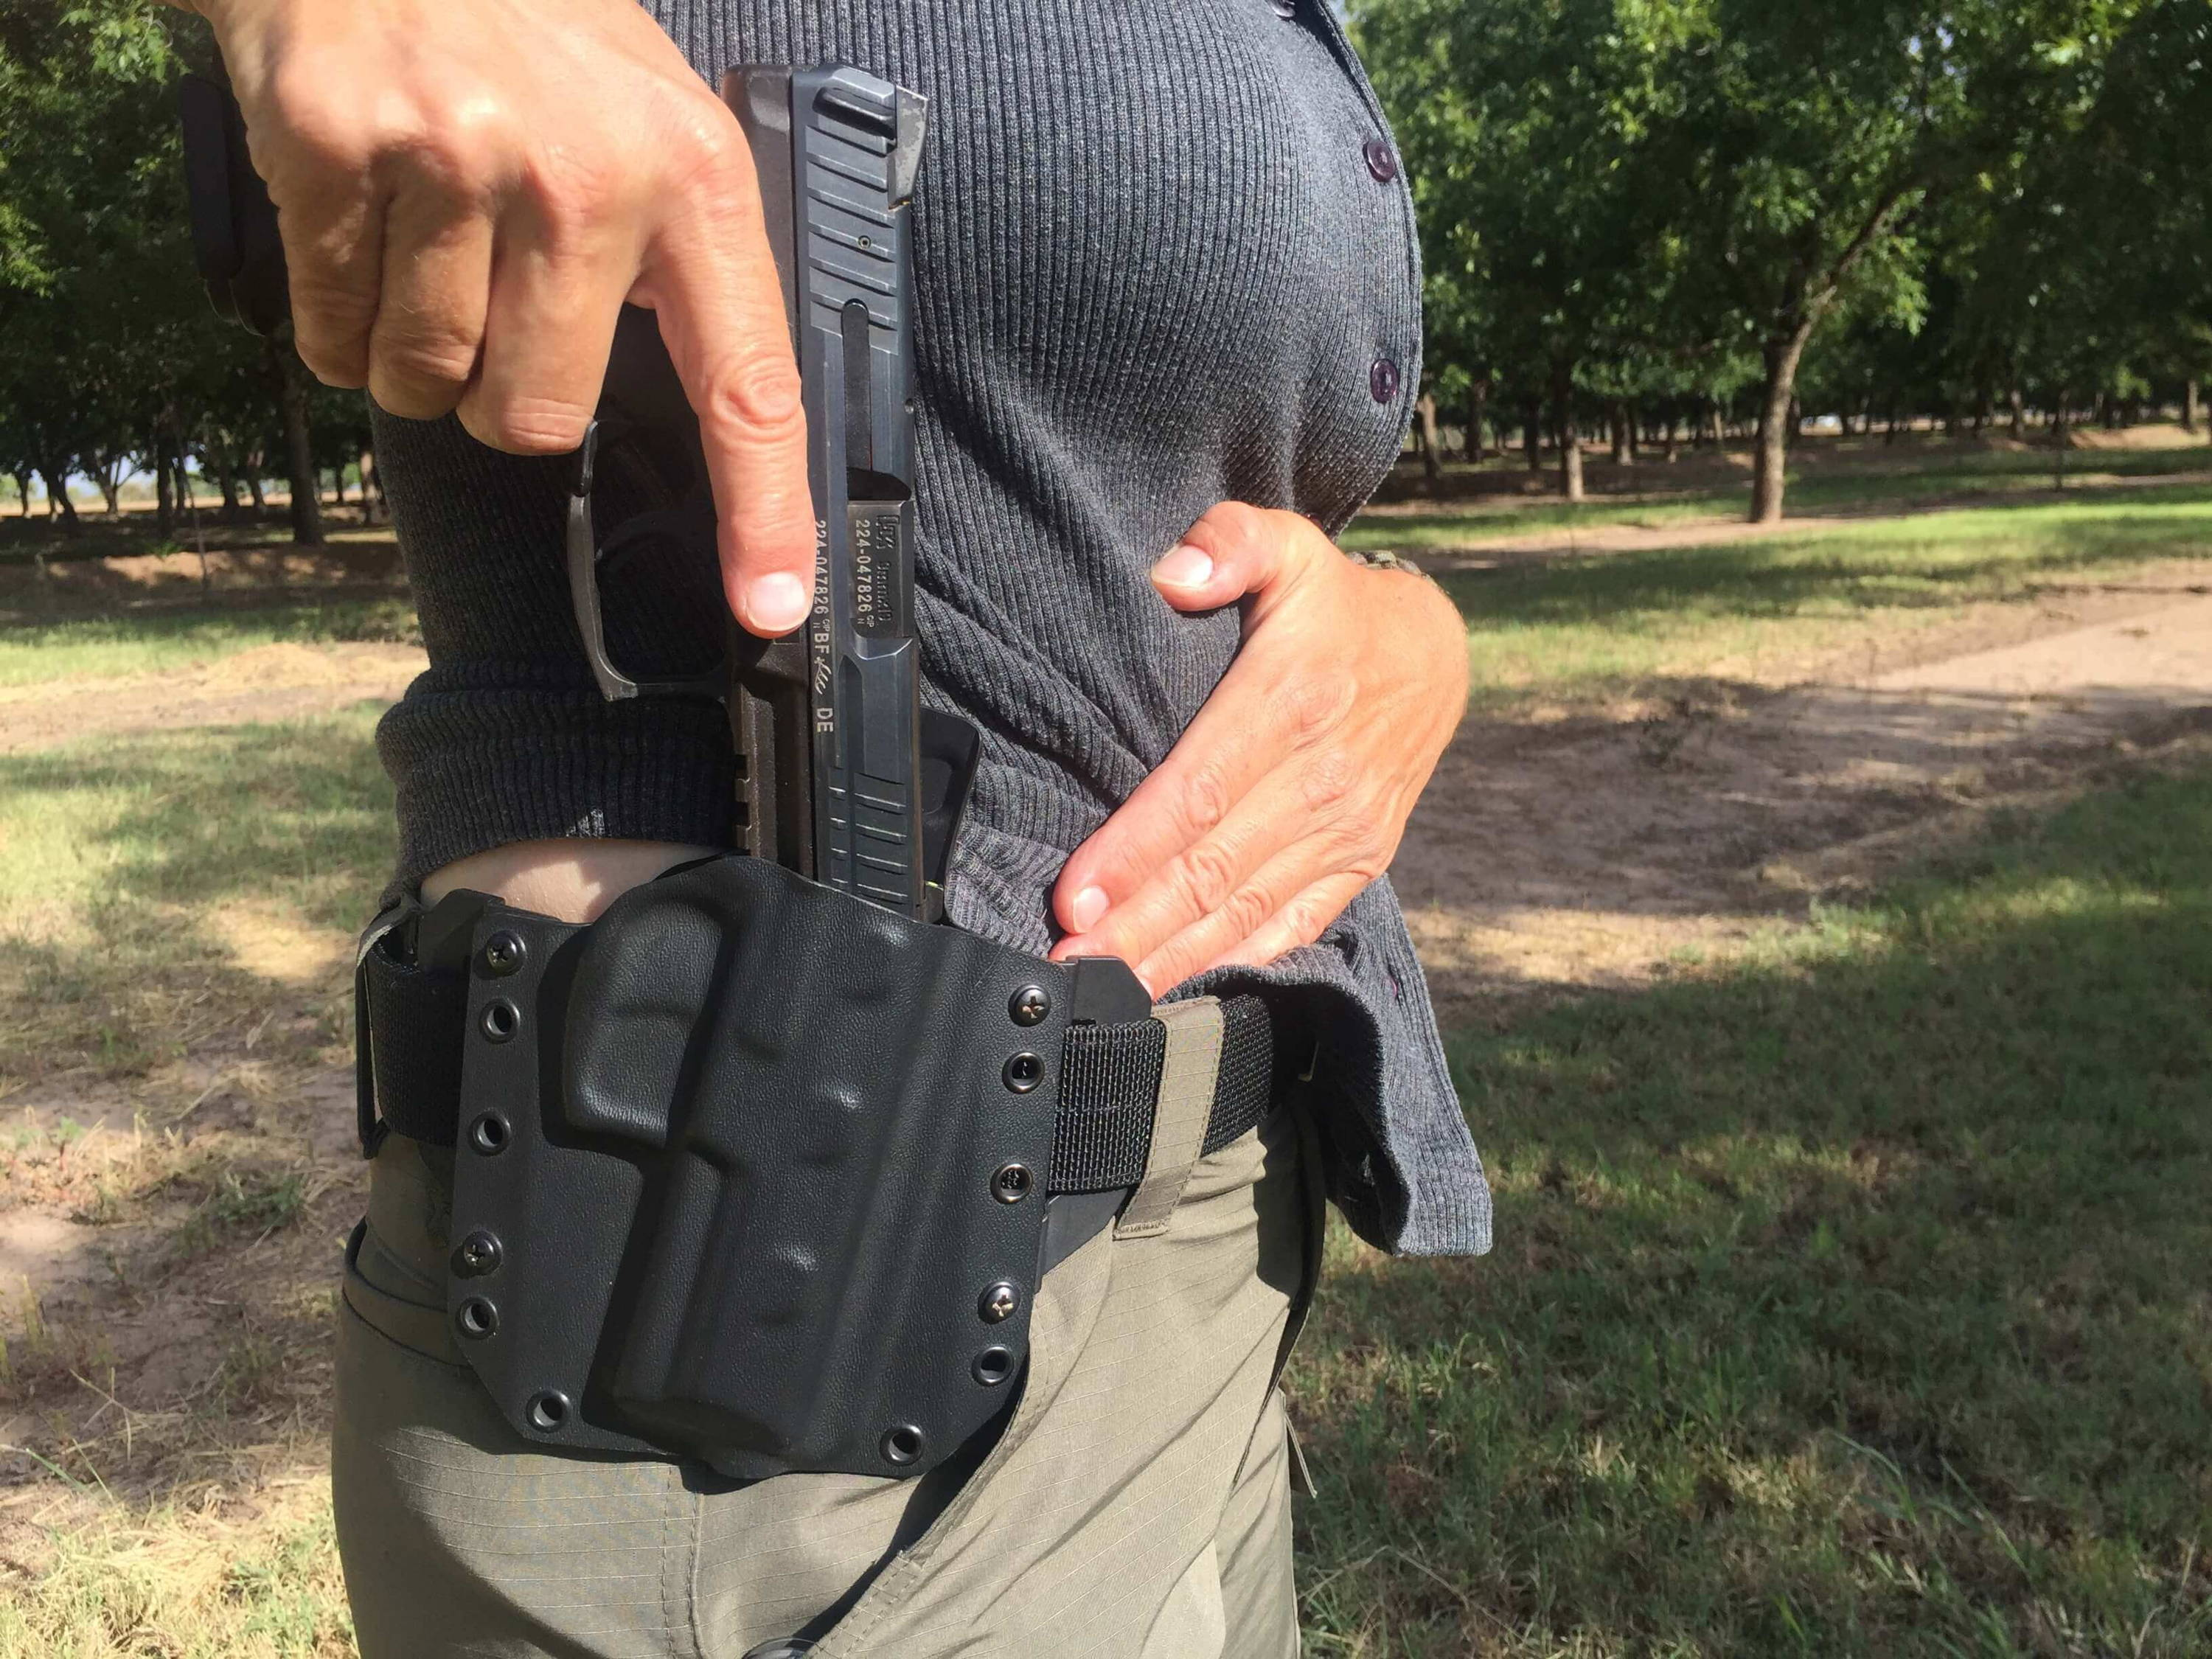 HK VP9 OWB Carry Holster